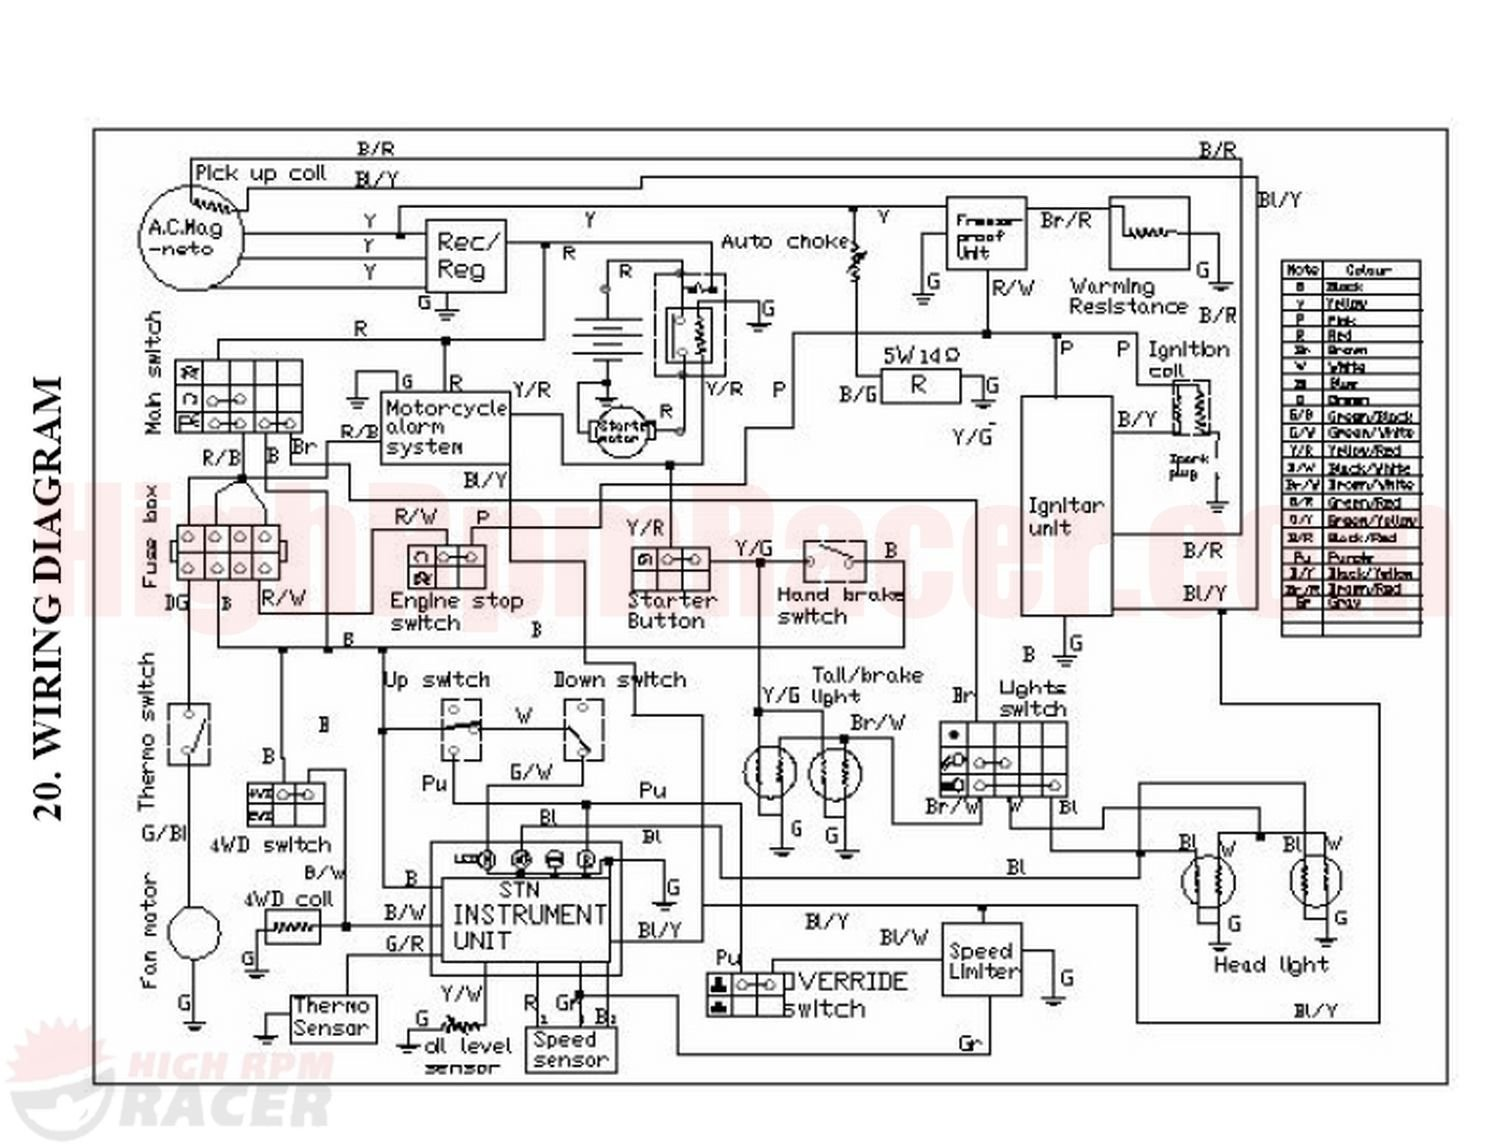 buyang300_wd buyang atv 300 wiring diagram $0 00 roketa atv wiring diagram at readyjetset.co